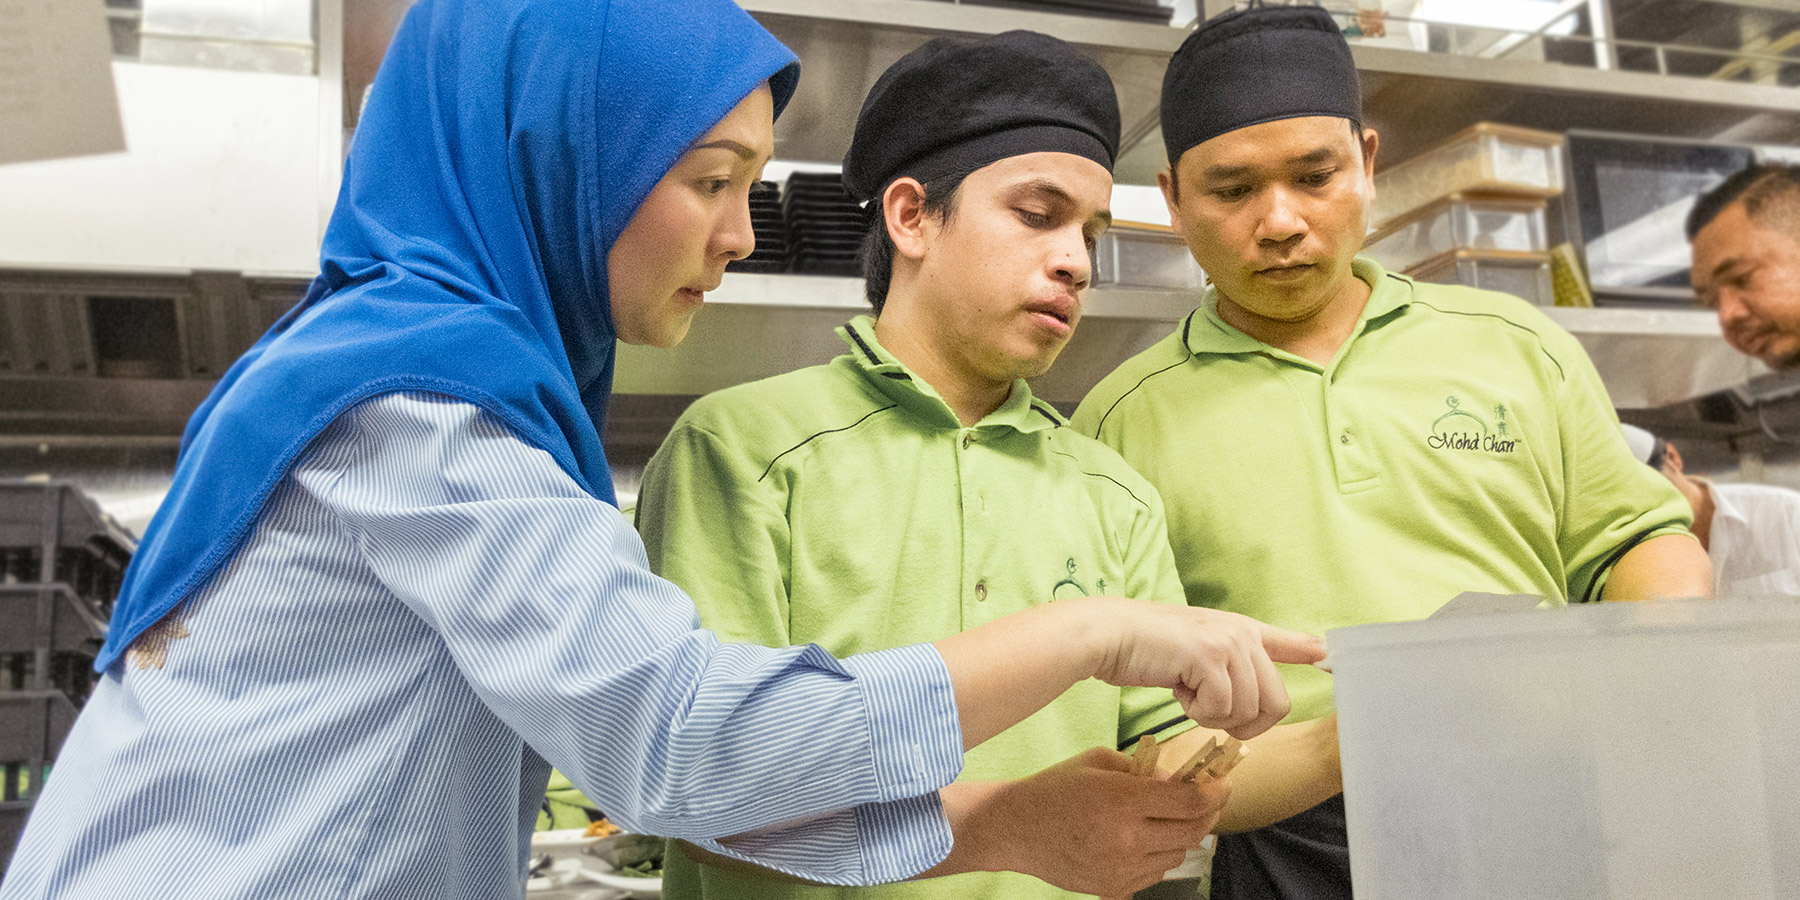 Best Halal Restaurant Chinese Muslim Cuisine Seafood Dim Sum As Qr Satu Set Depan Belakang We Believe The Foundation Of Our Success Begins With People And Values That Determine Everything Do These Simple In